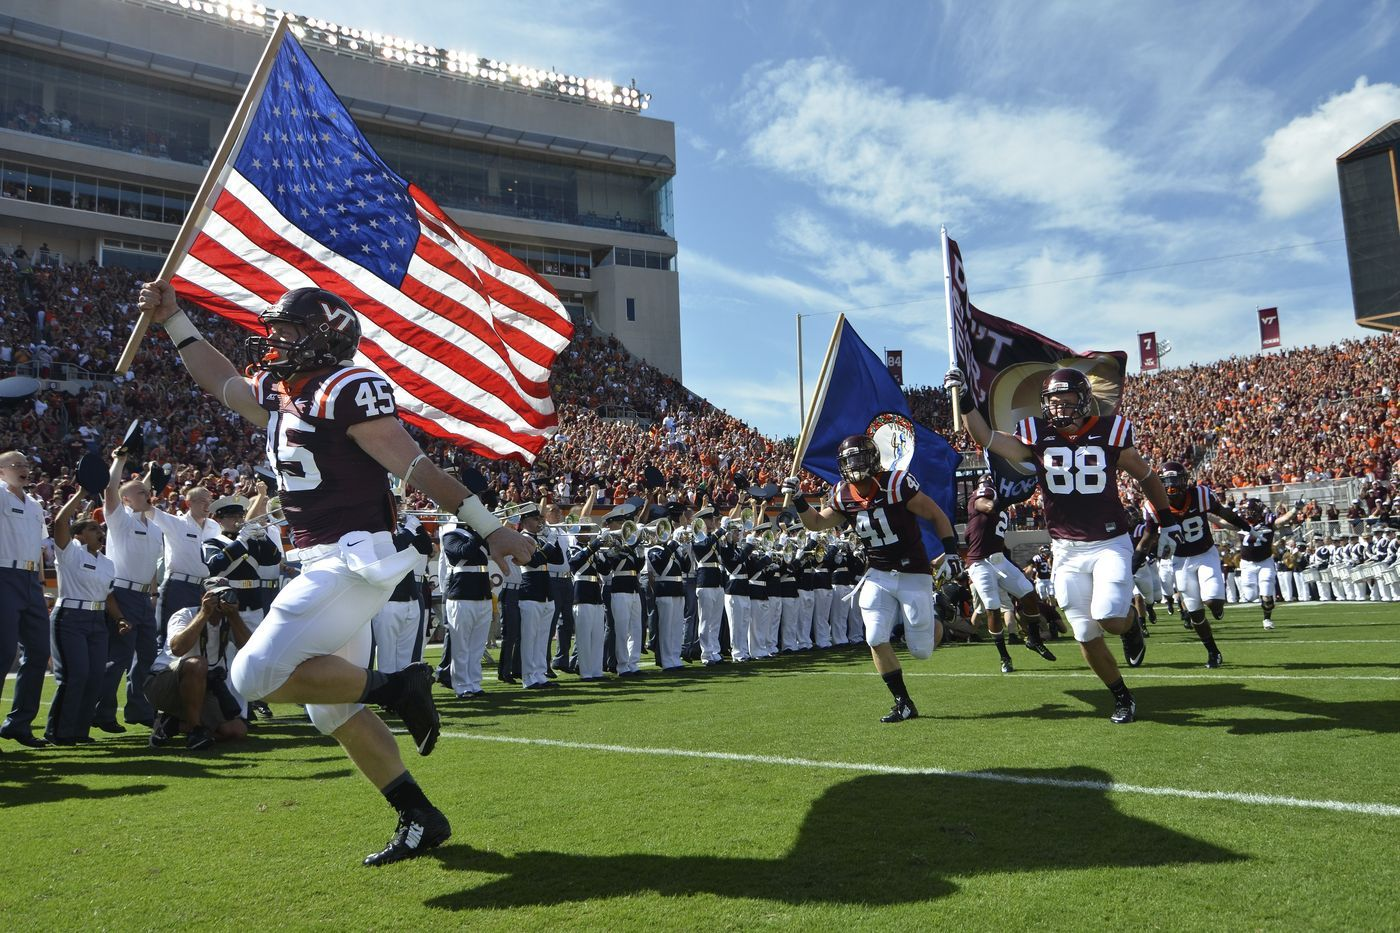 The 11 best things about Virginia Tech's 'Enter Sandman